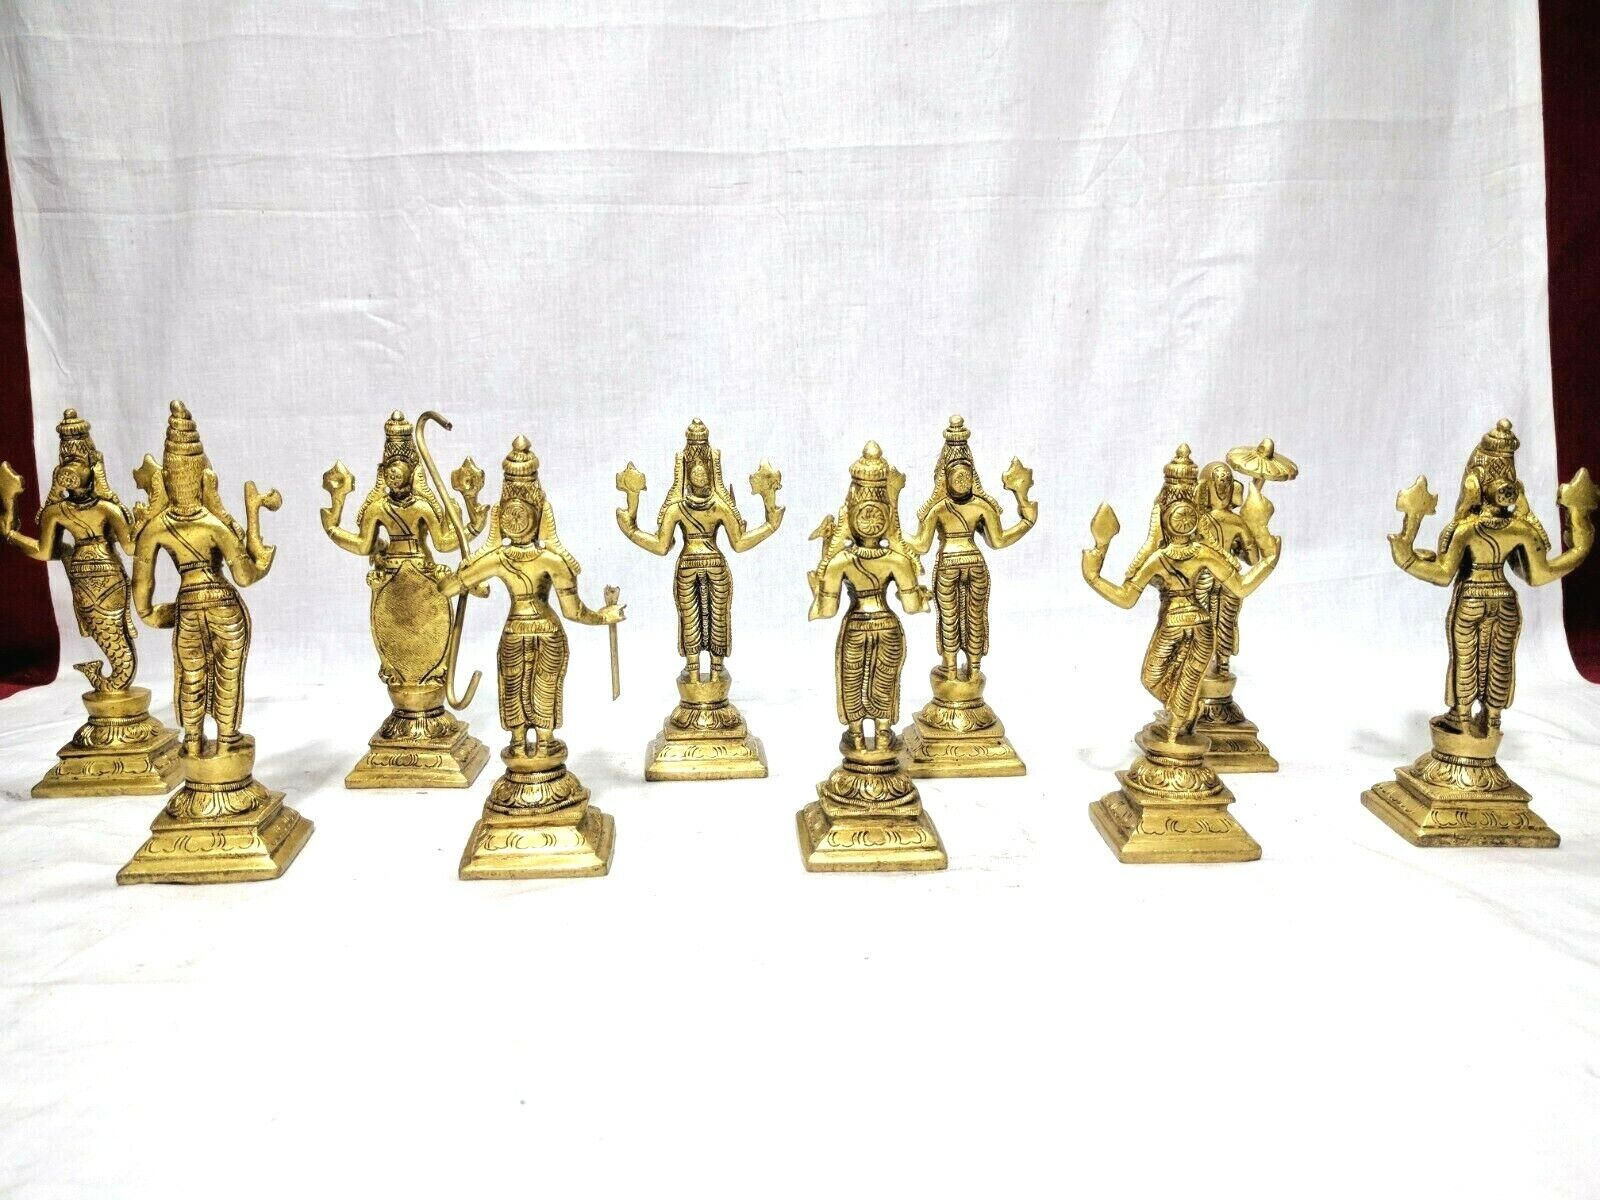 Dashavatar Brass Statue Vishnu Ten Avatar God Pooja Figurine Temple Art Decor Без бренда - фотография #12